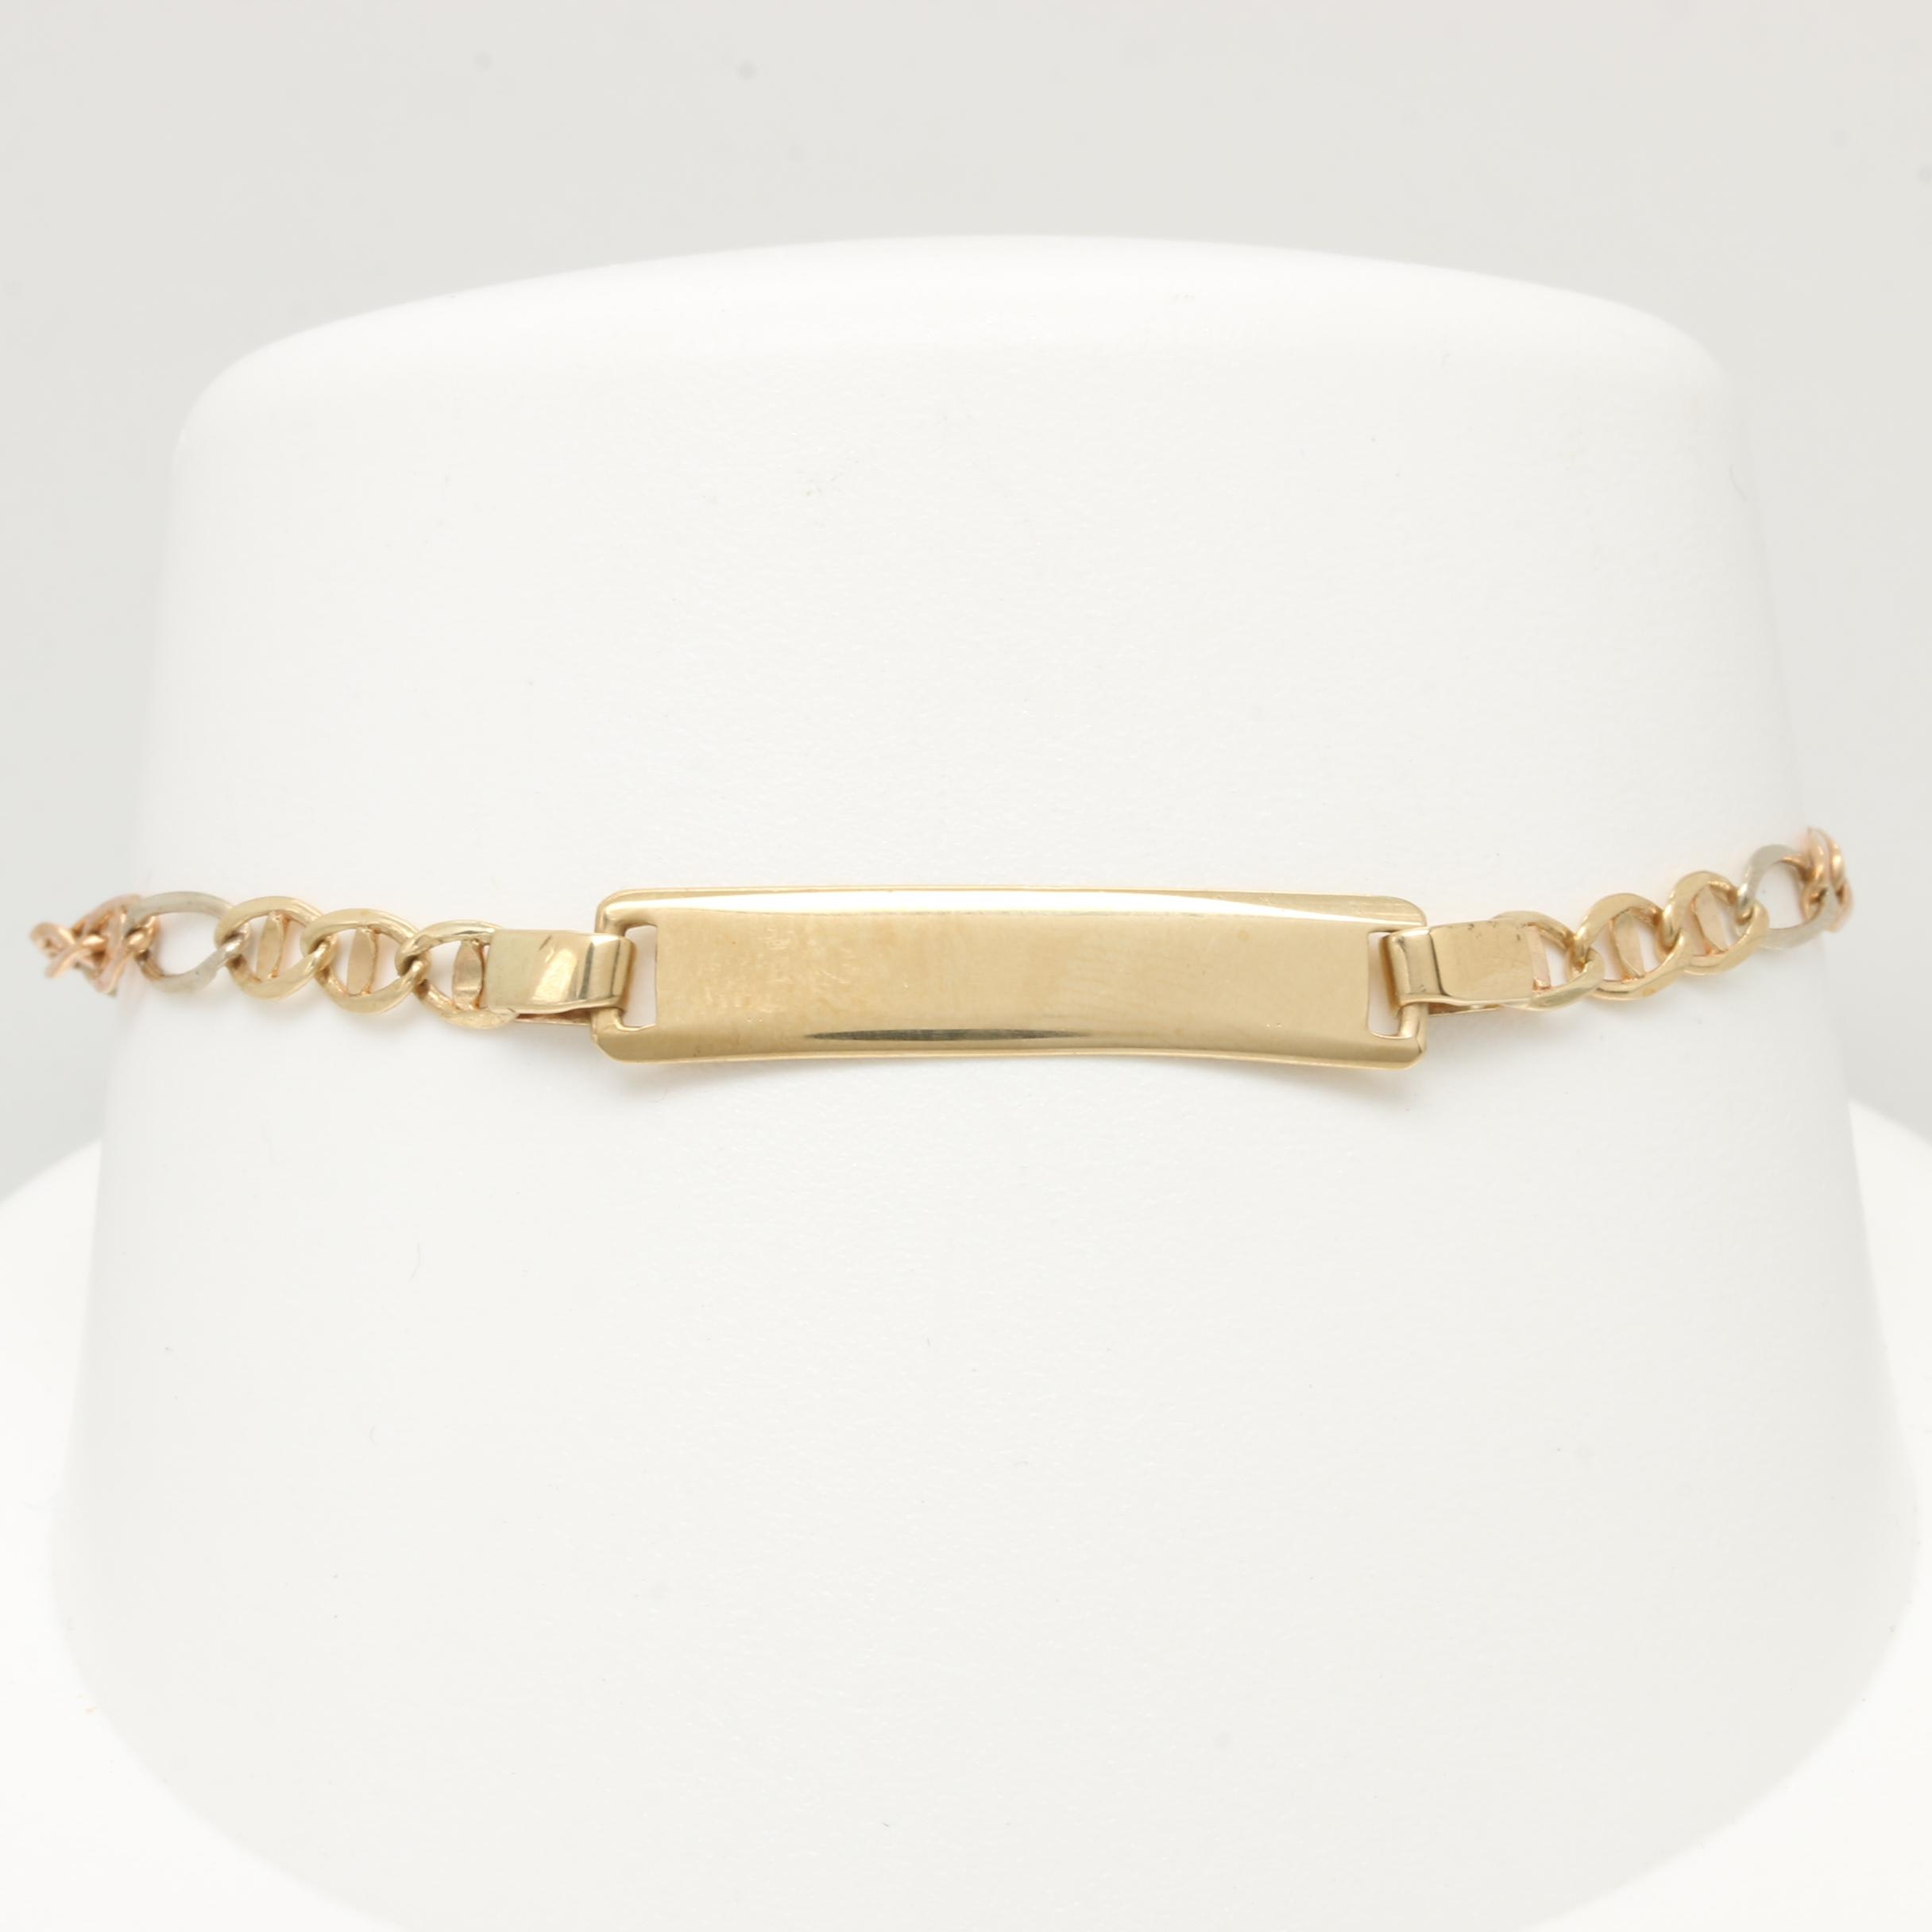 10K Yellow, White, and Rose Gold ID Bracelet